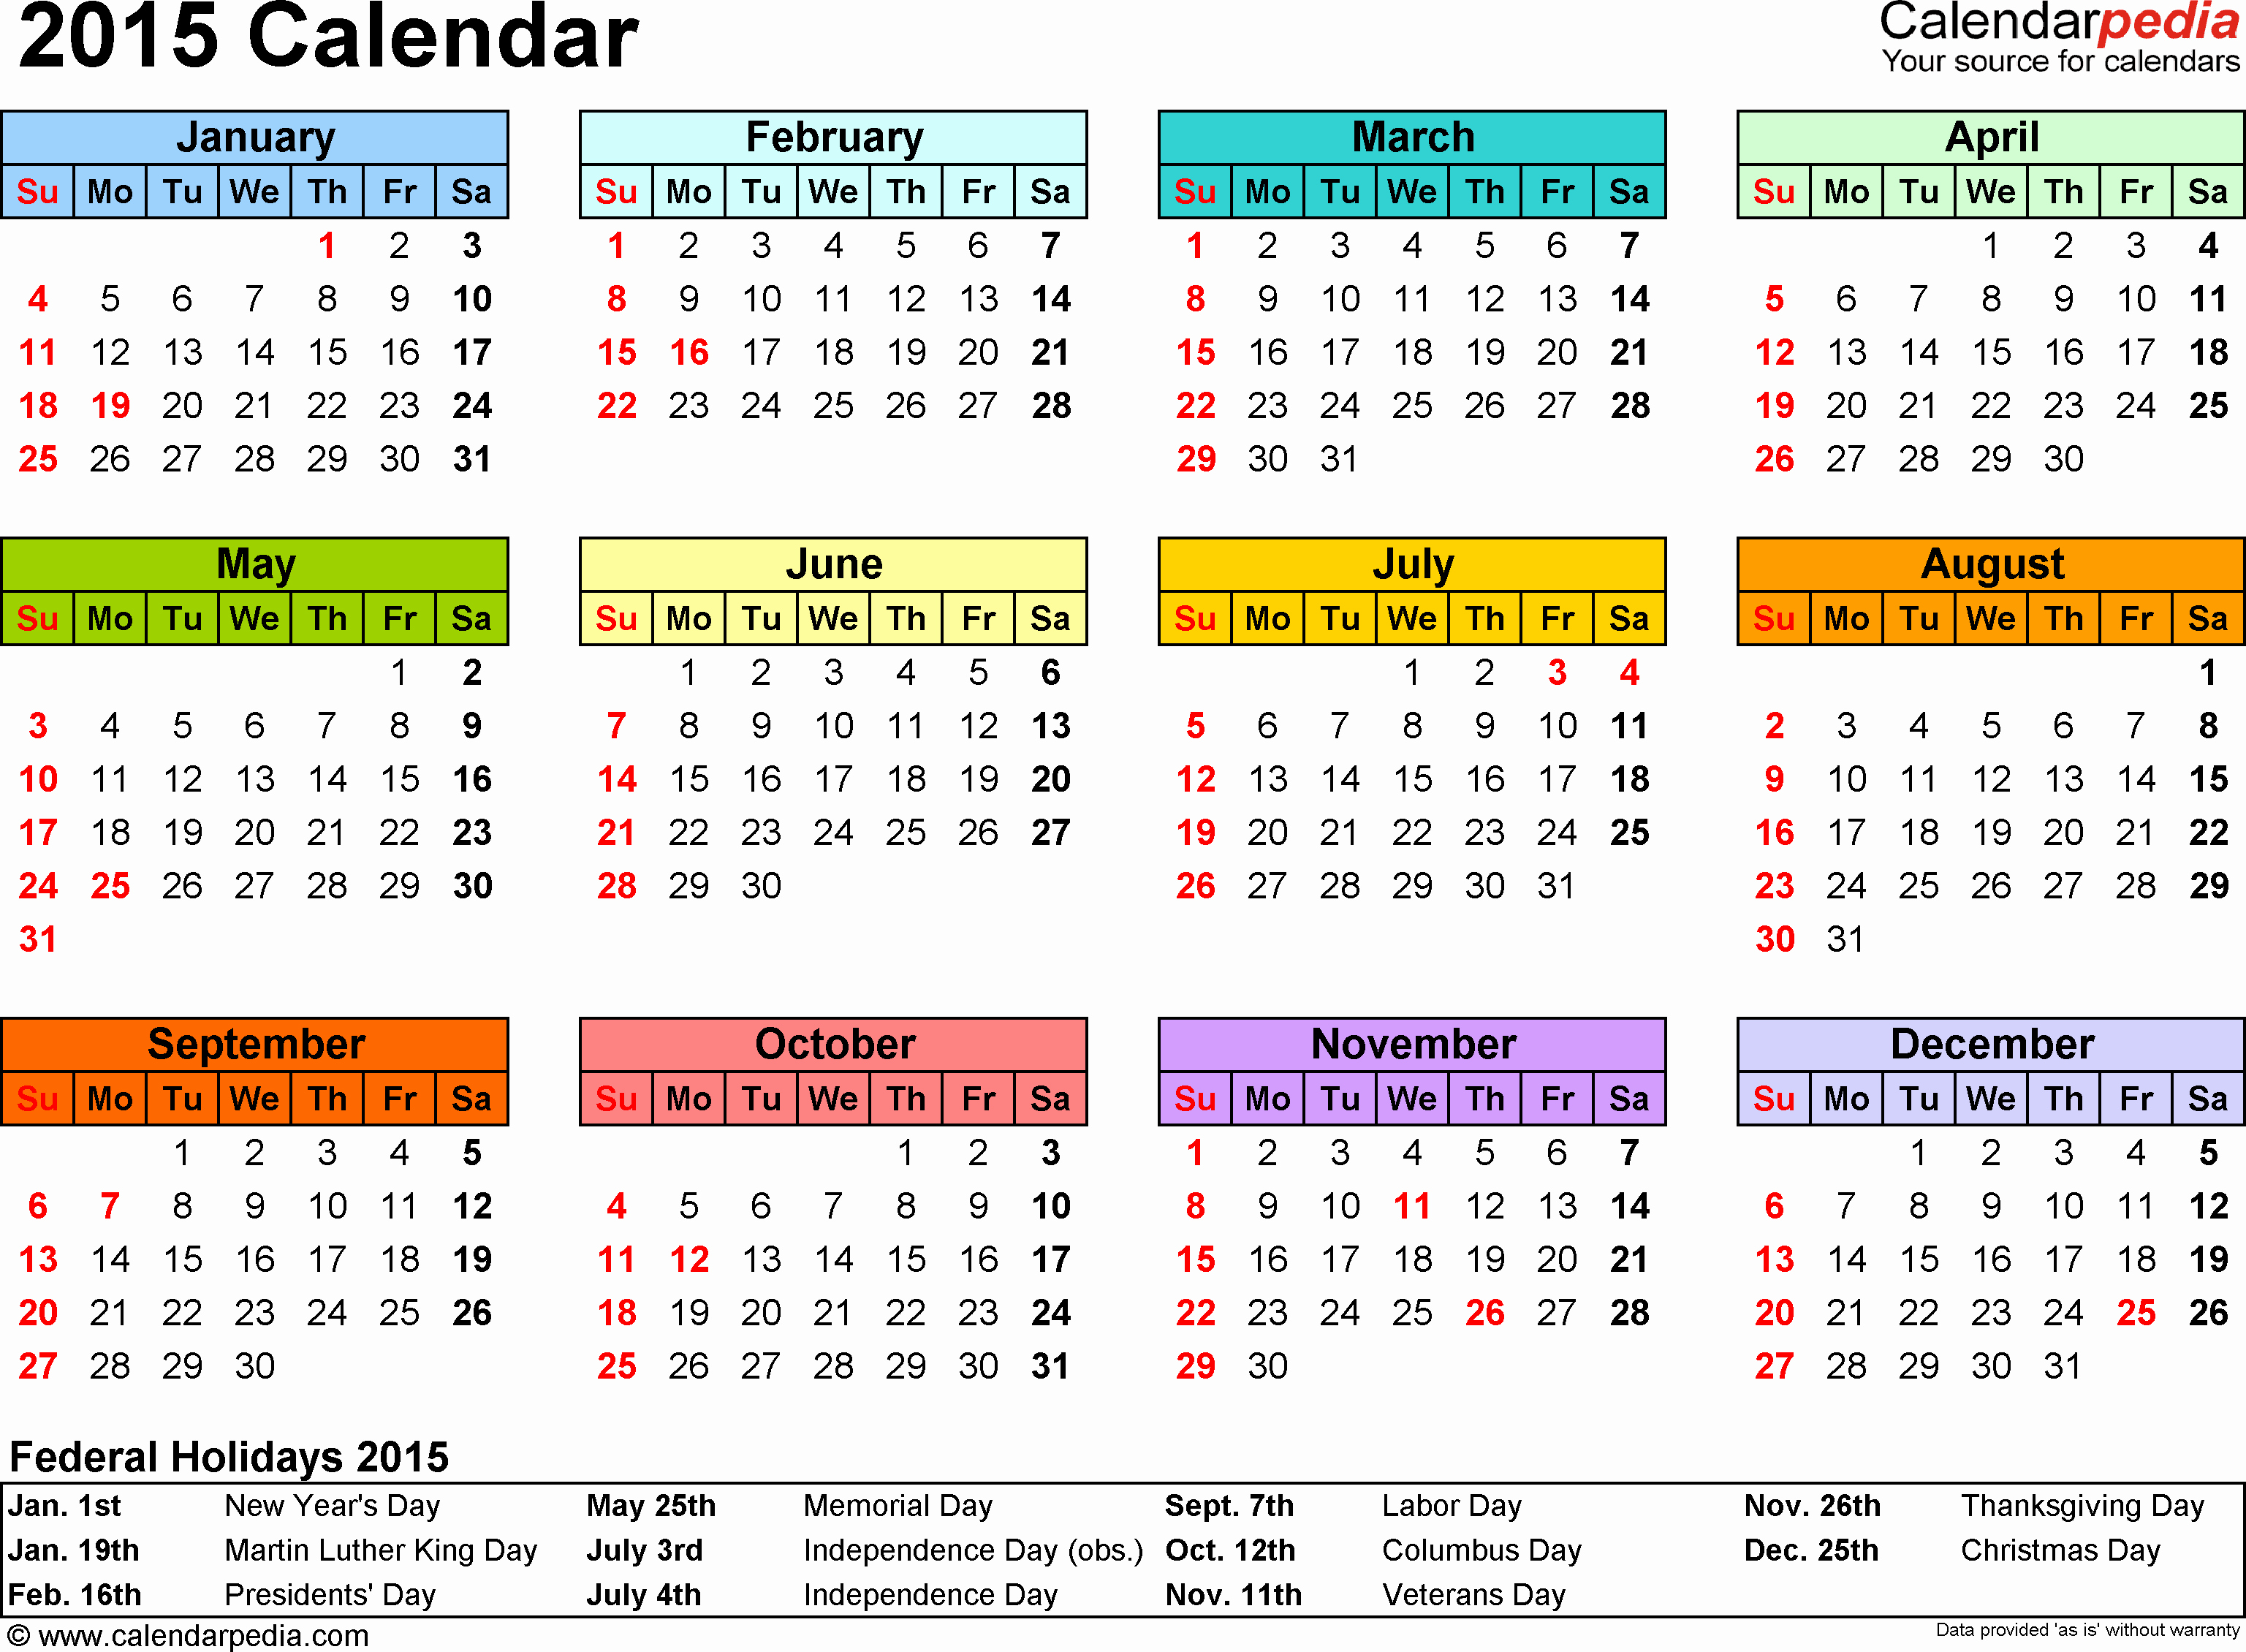 Calendar 2015 Printable with Holidays Best Of 2015 Calendar Excel Download 16 Free Printable Templates